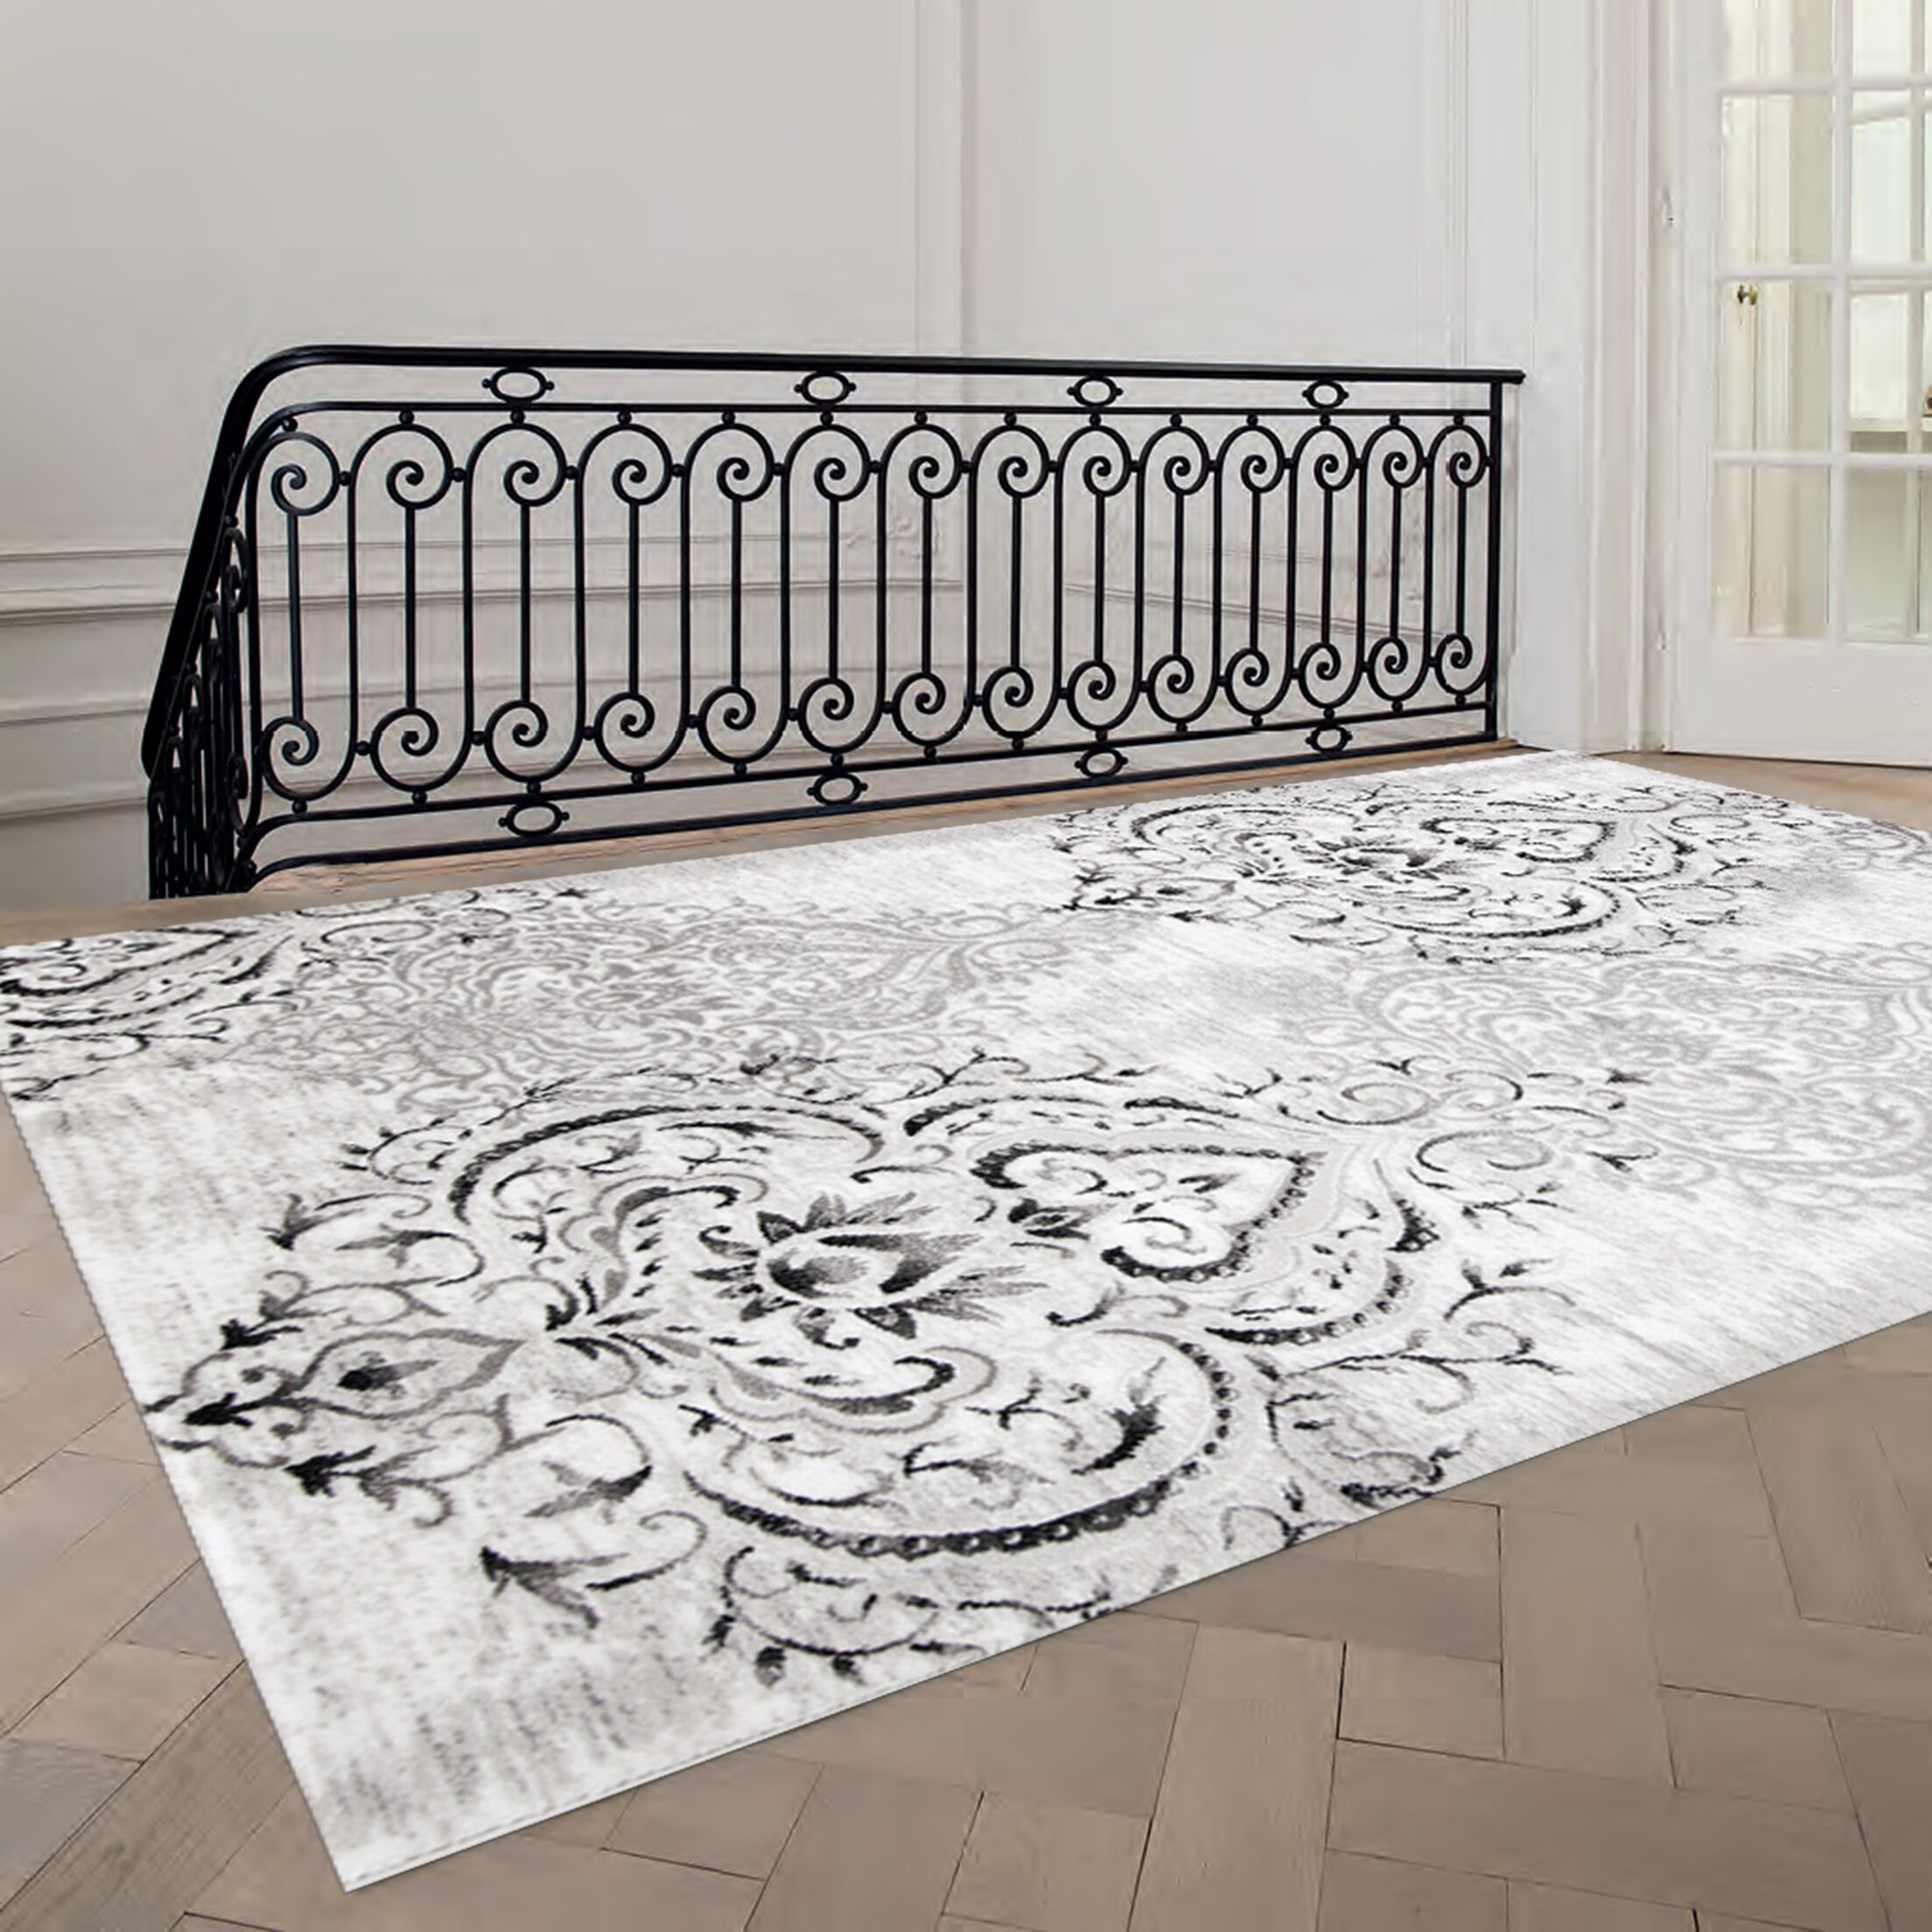 Abbate Venetian Grey/White Area Rug Rug Size: Rectangle 7'10